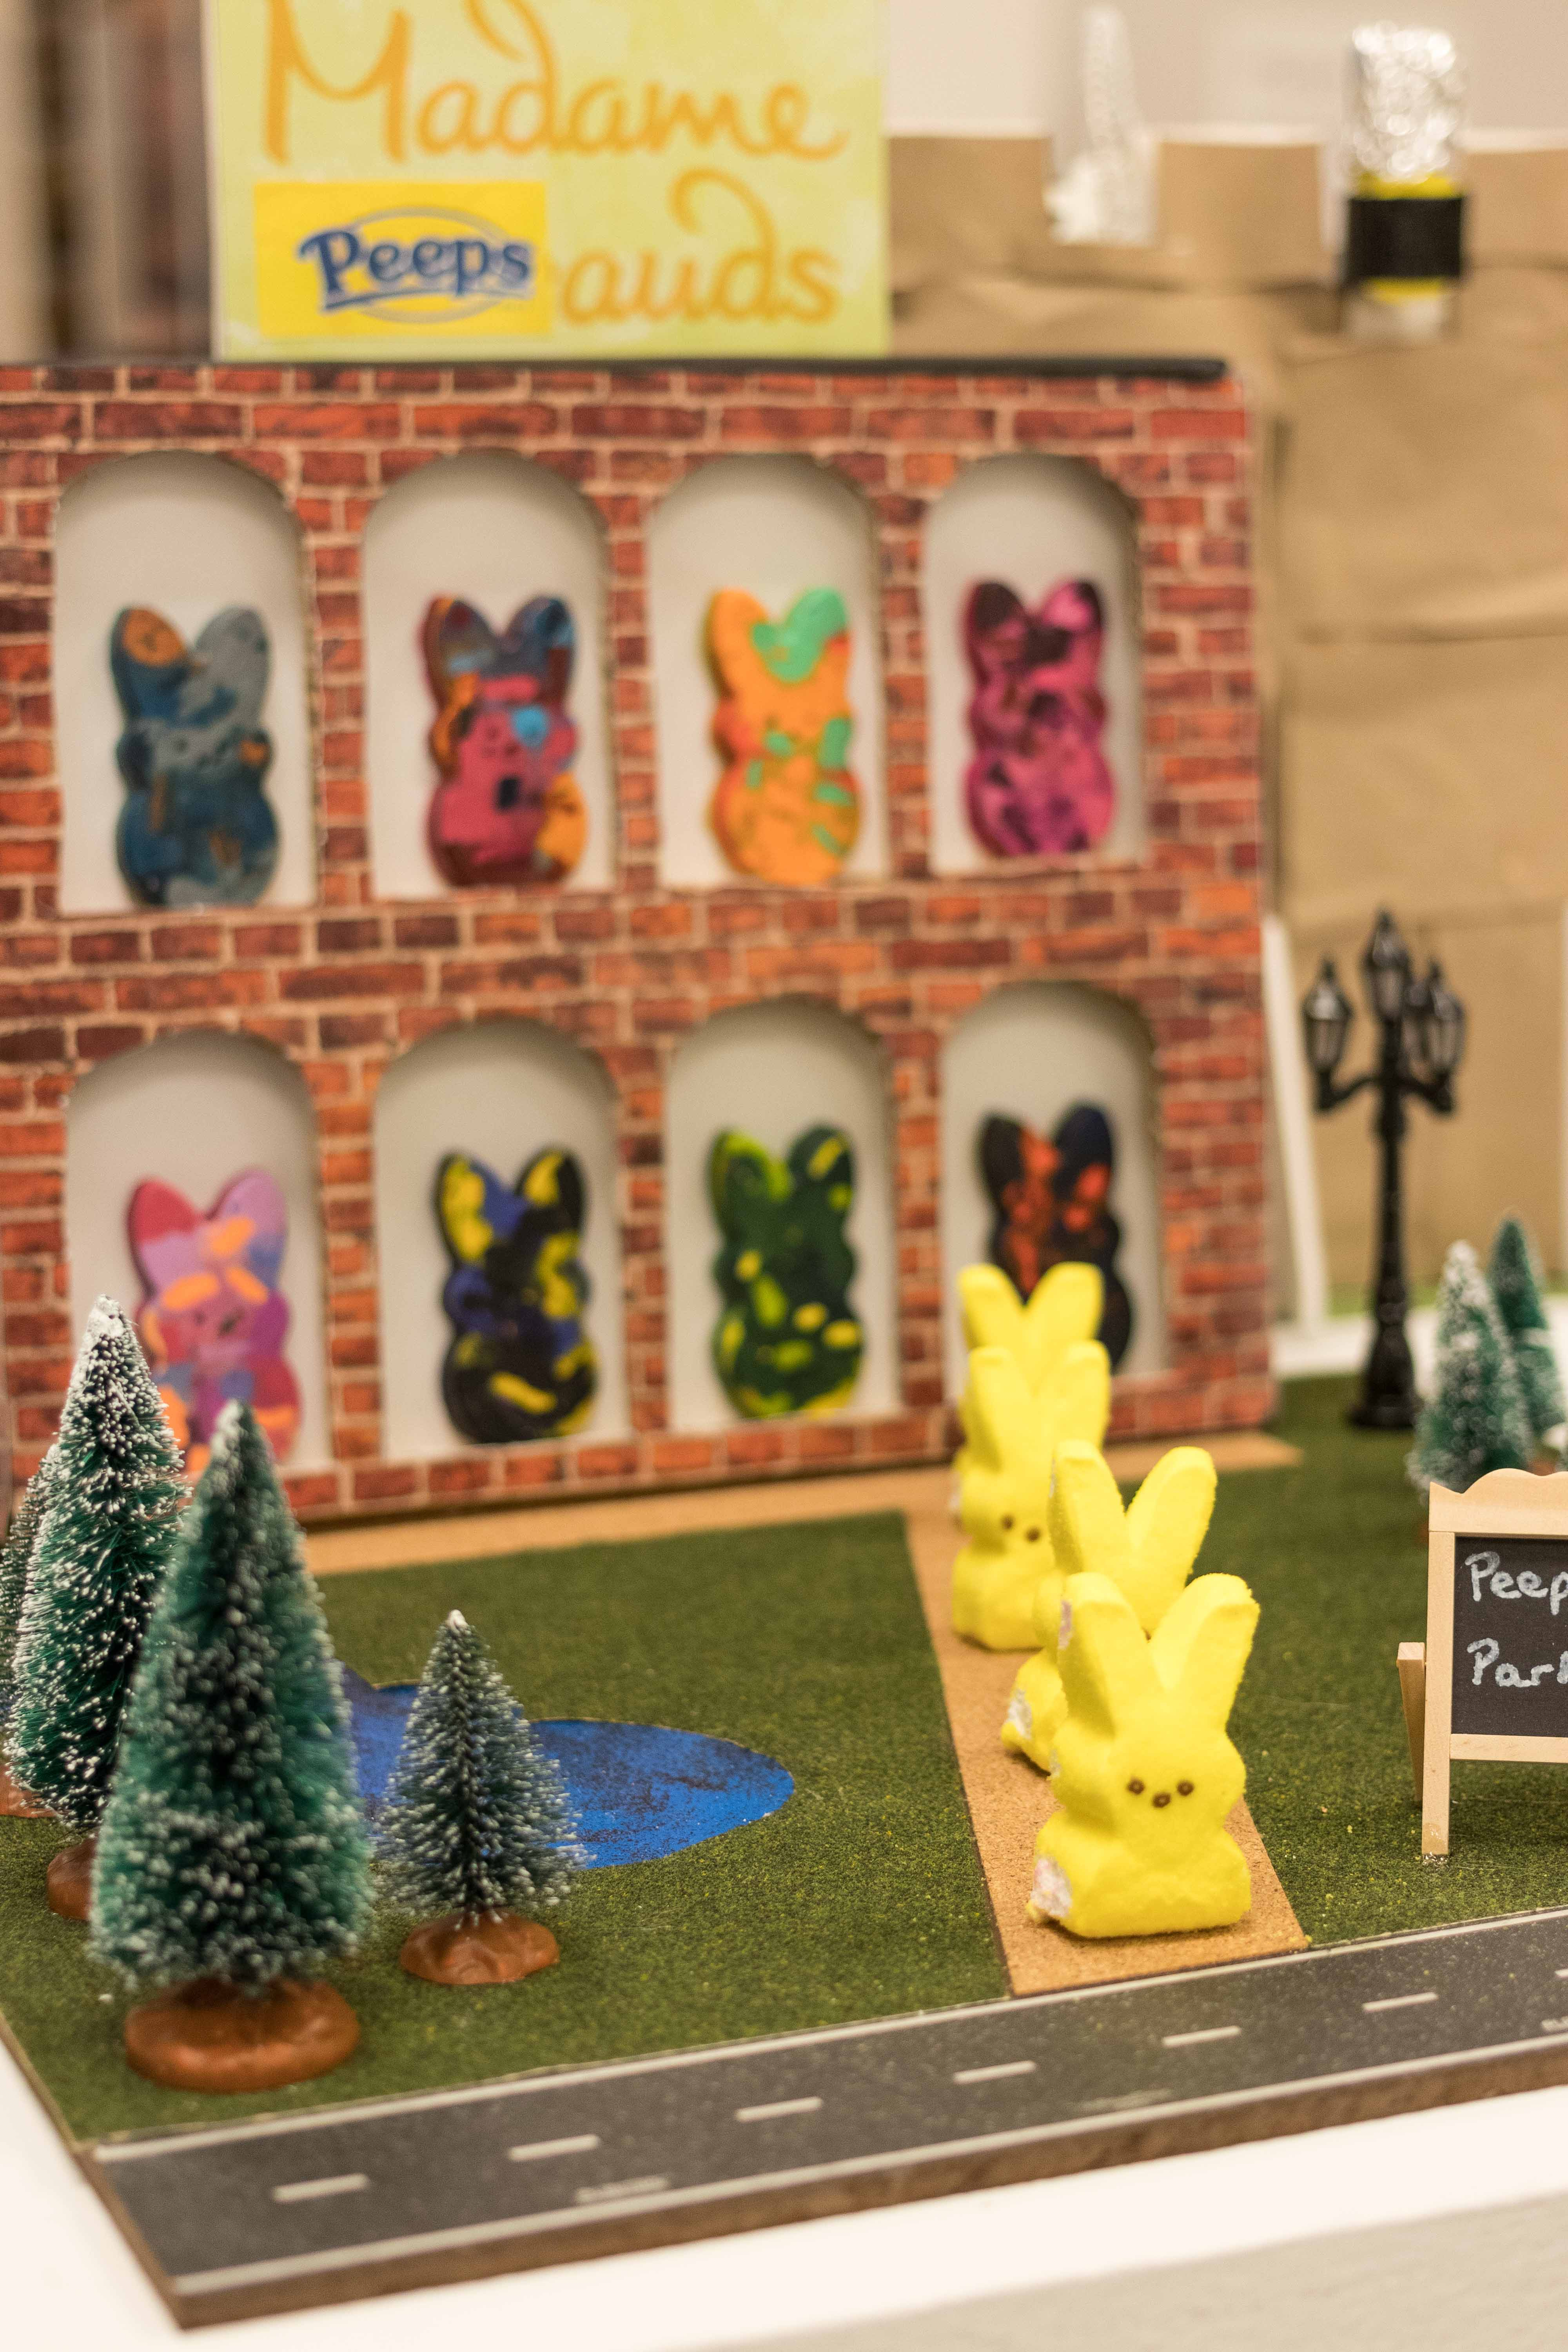 PEEPS Art Exhibition at the Racine Art Museum   https://www.roseclearfield.com